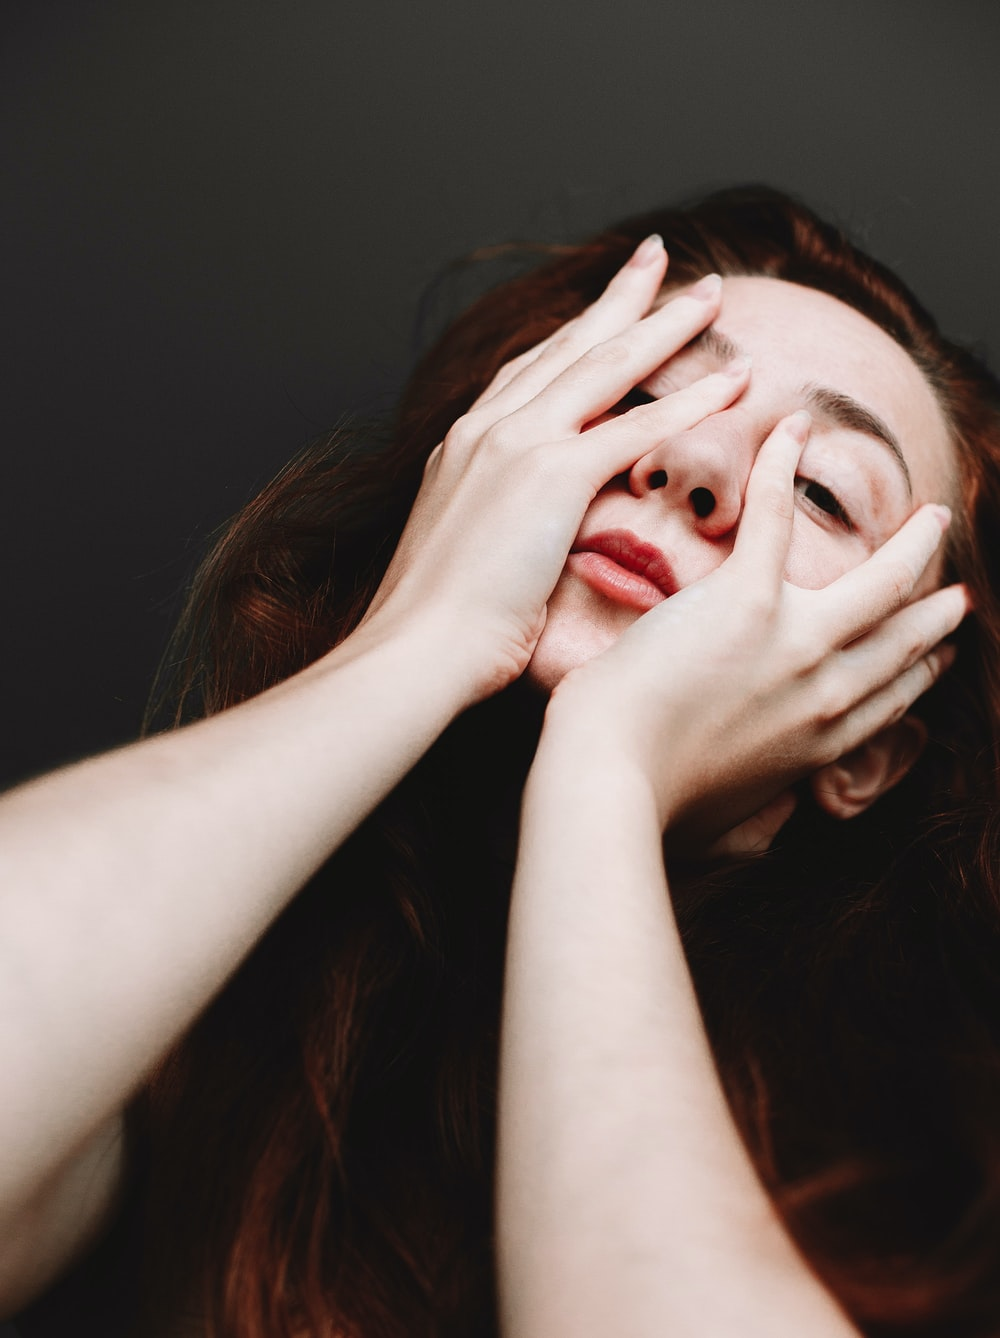 woman covering her face with her hand